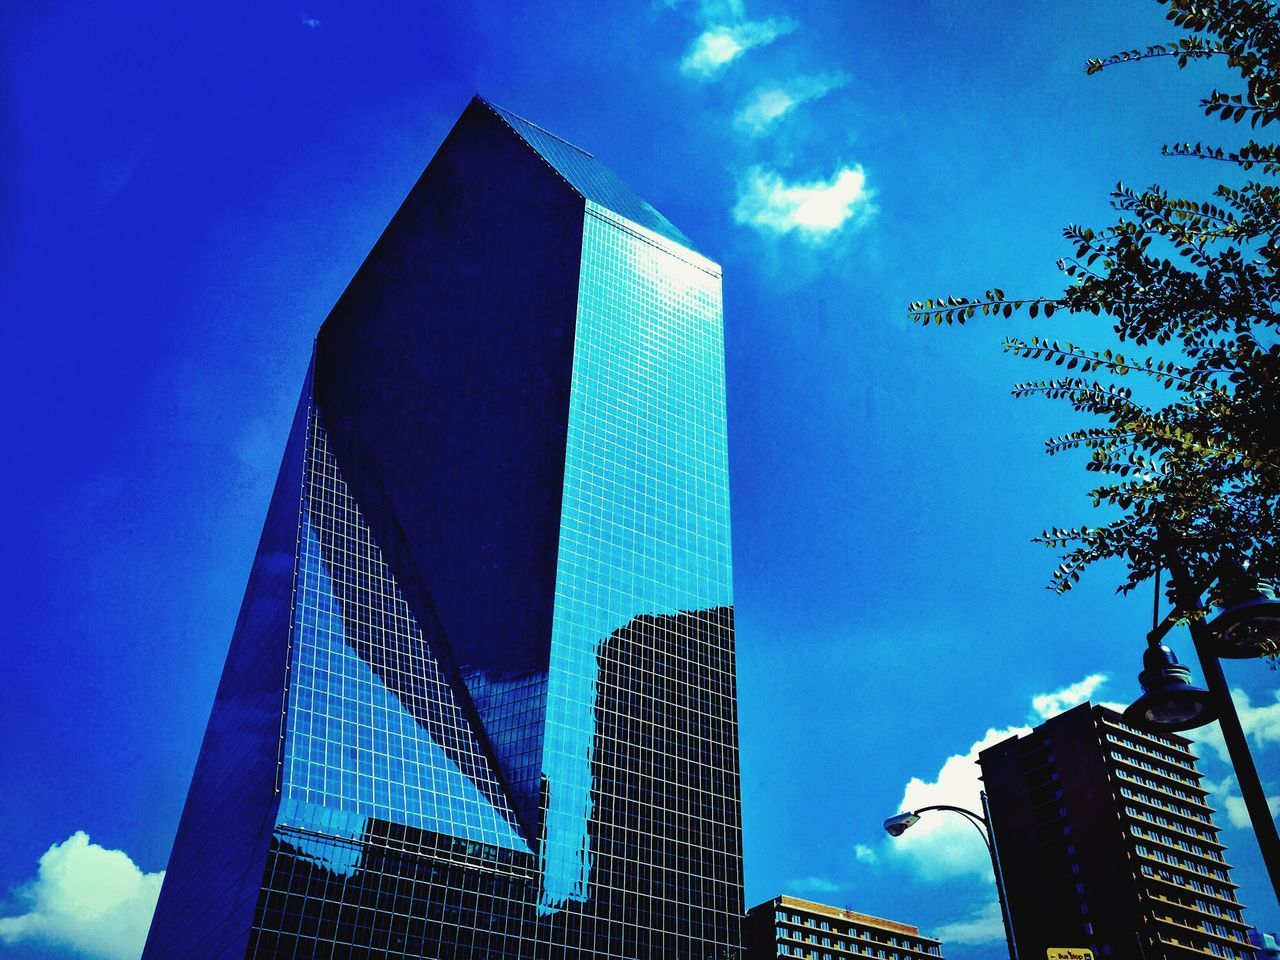 Downtown Dallas Building Downtown Dallas Building Architecture City City Life Cityscapes Hanging Out Beautiful Scenics Fun Summer Skyscraper Texas Relaxing Blue Sky Outdoors Check This Out Hello World Taking Photos Enjoying Life Showcase July Hidden Gems